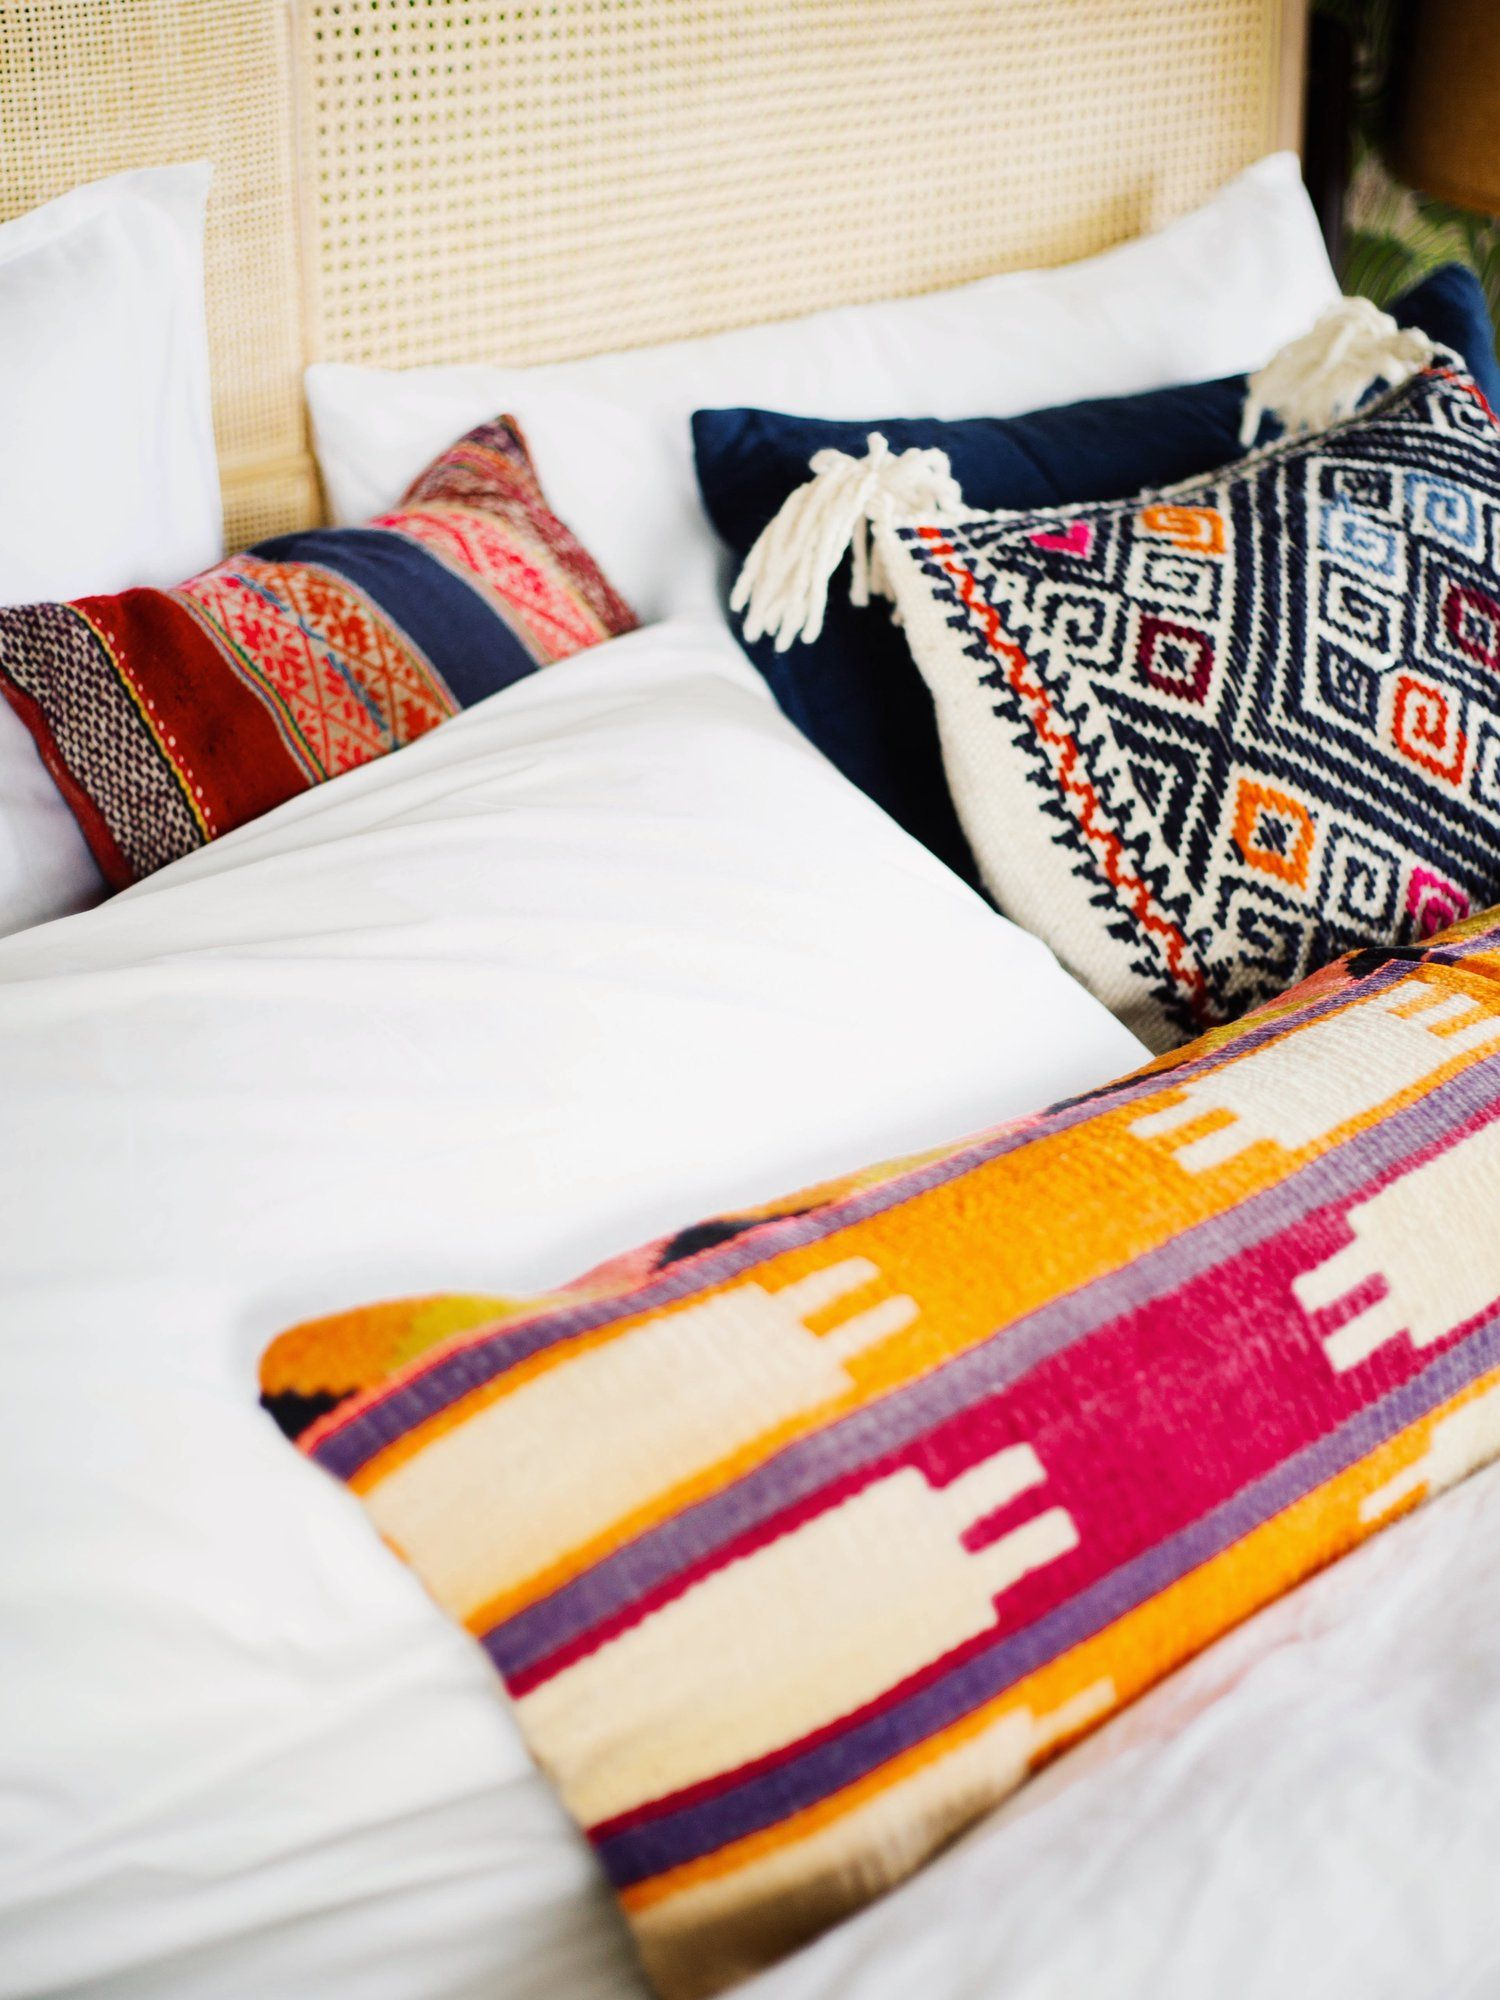 3 Ways To Style Your Pillows On A King Size Bed Old Brand New King Size Bed Pillows Eclectic Bedroom